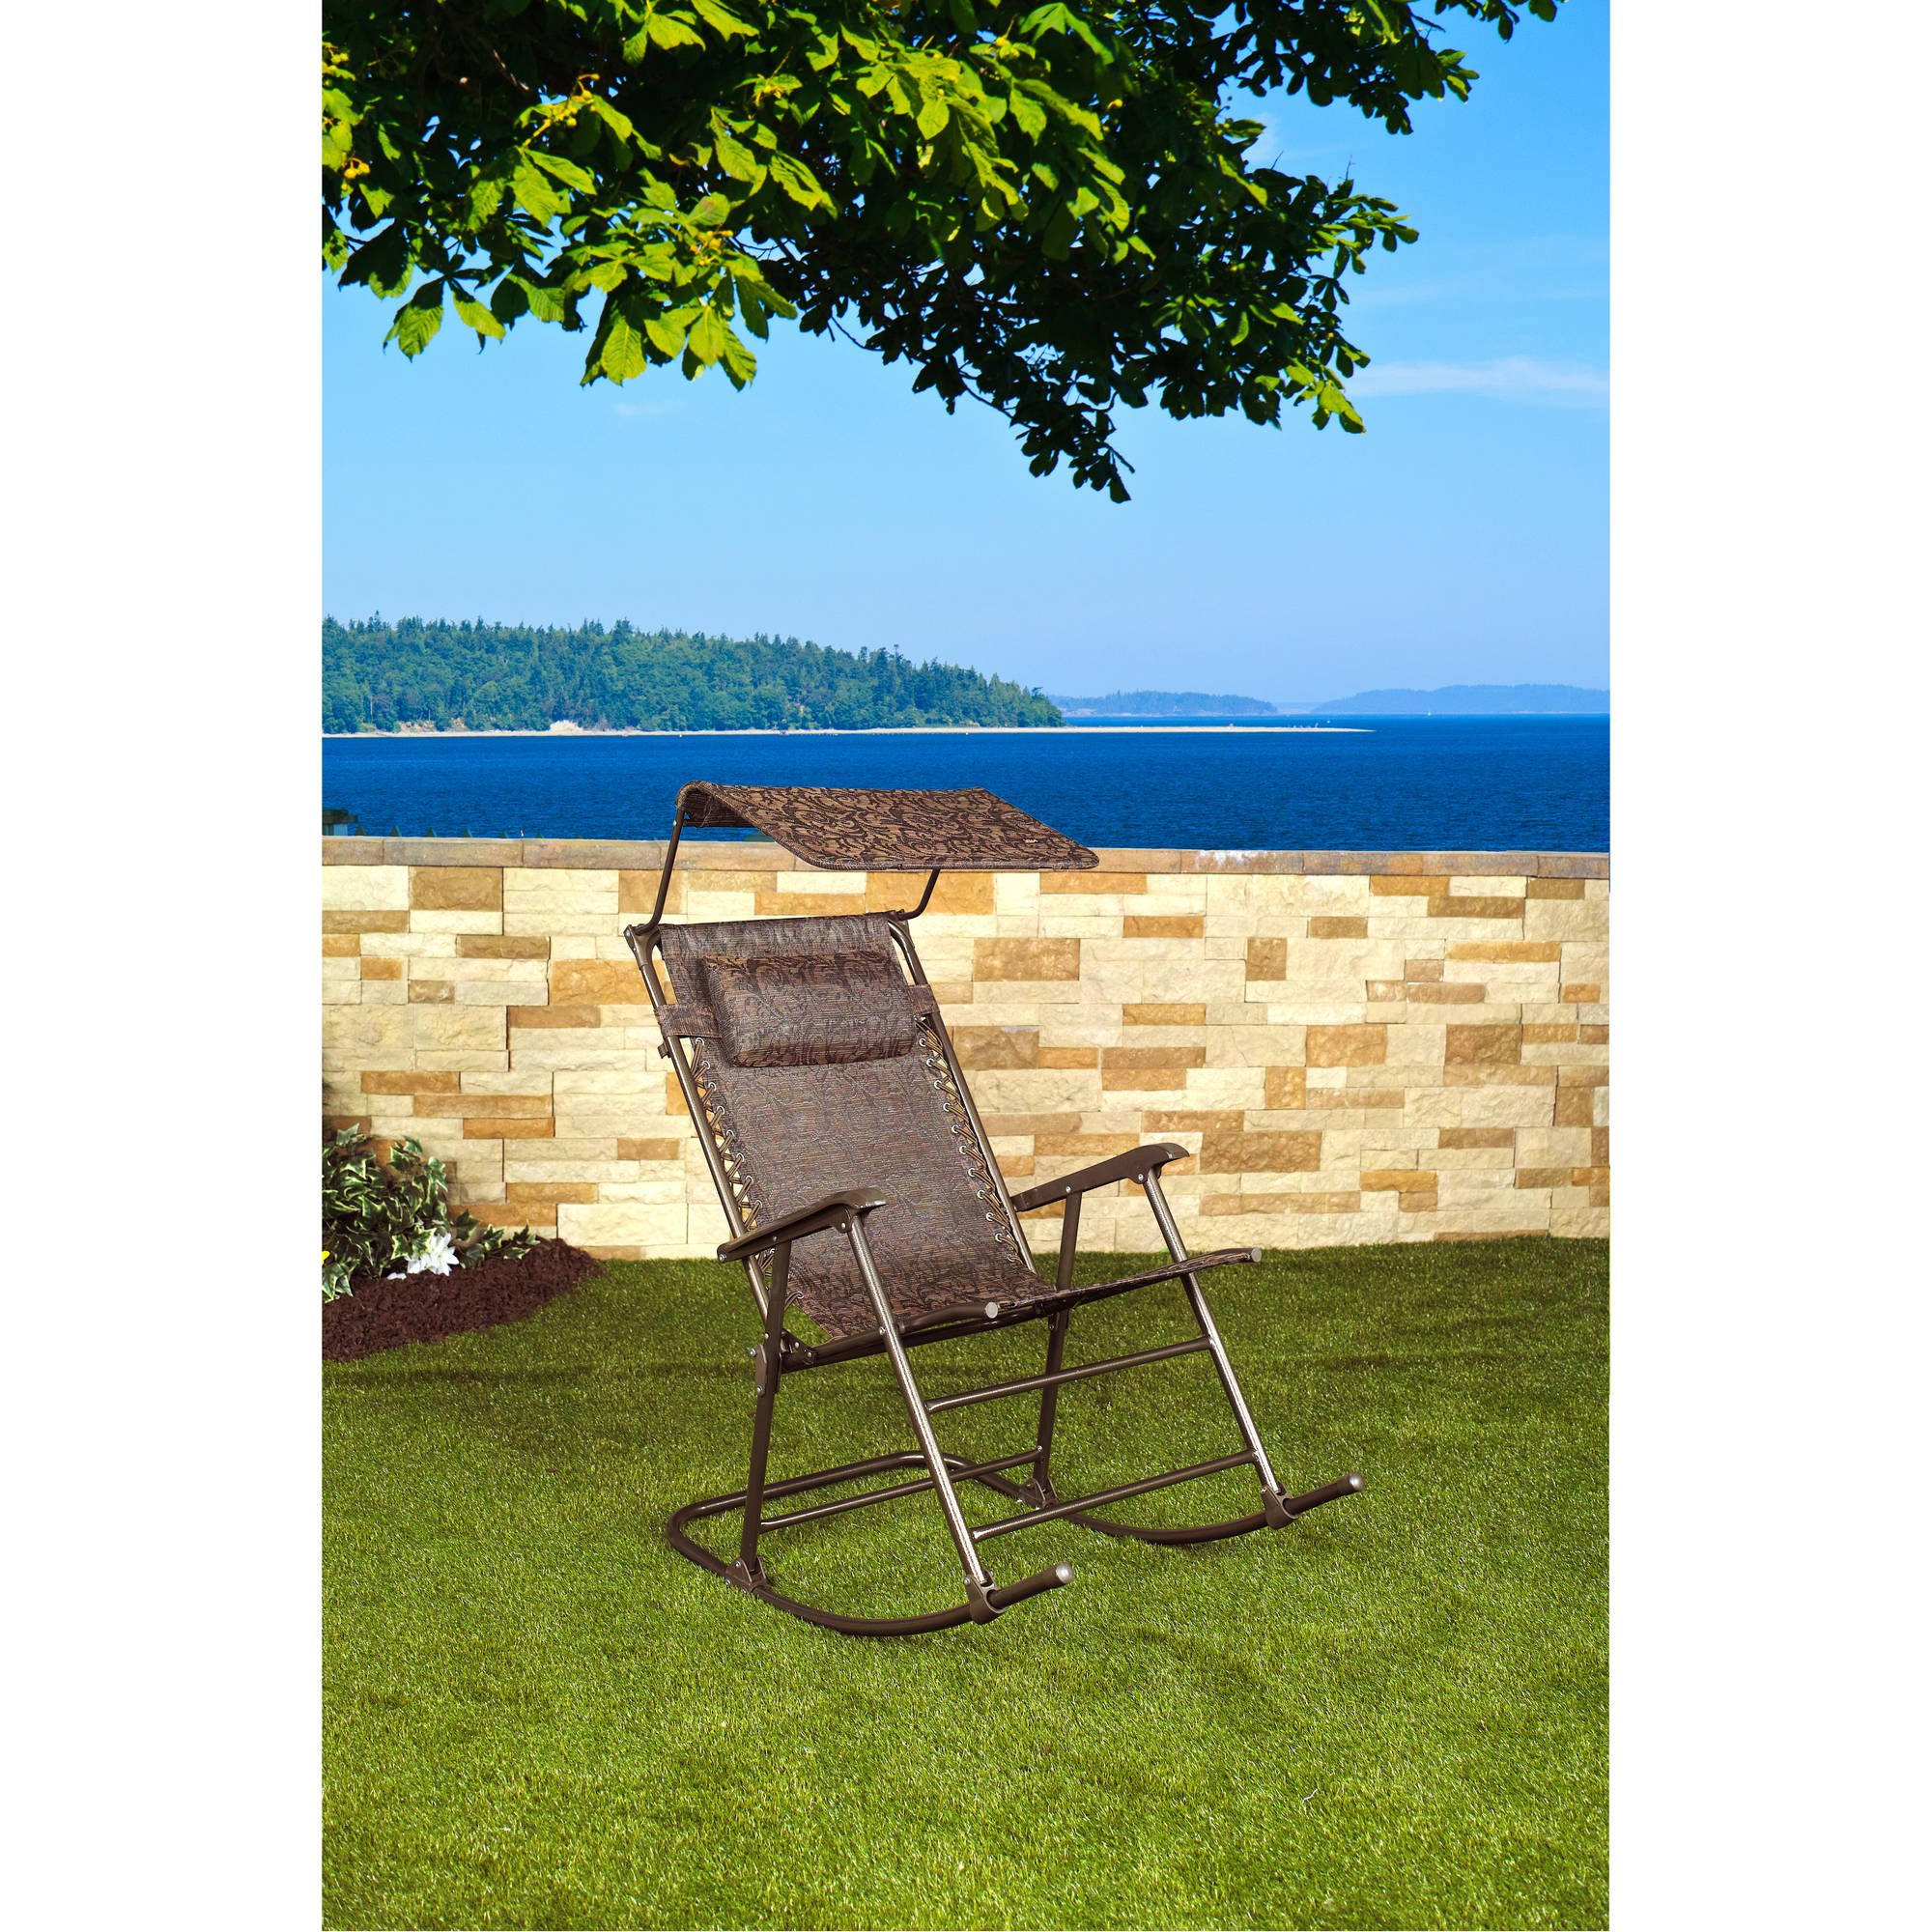 Bliss Hammocks Rocking Chair with Canopy